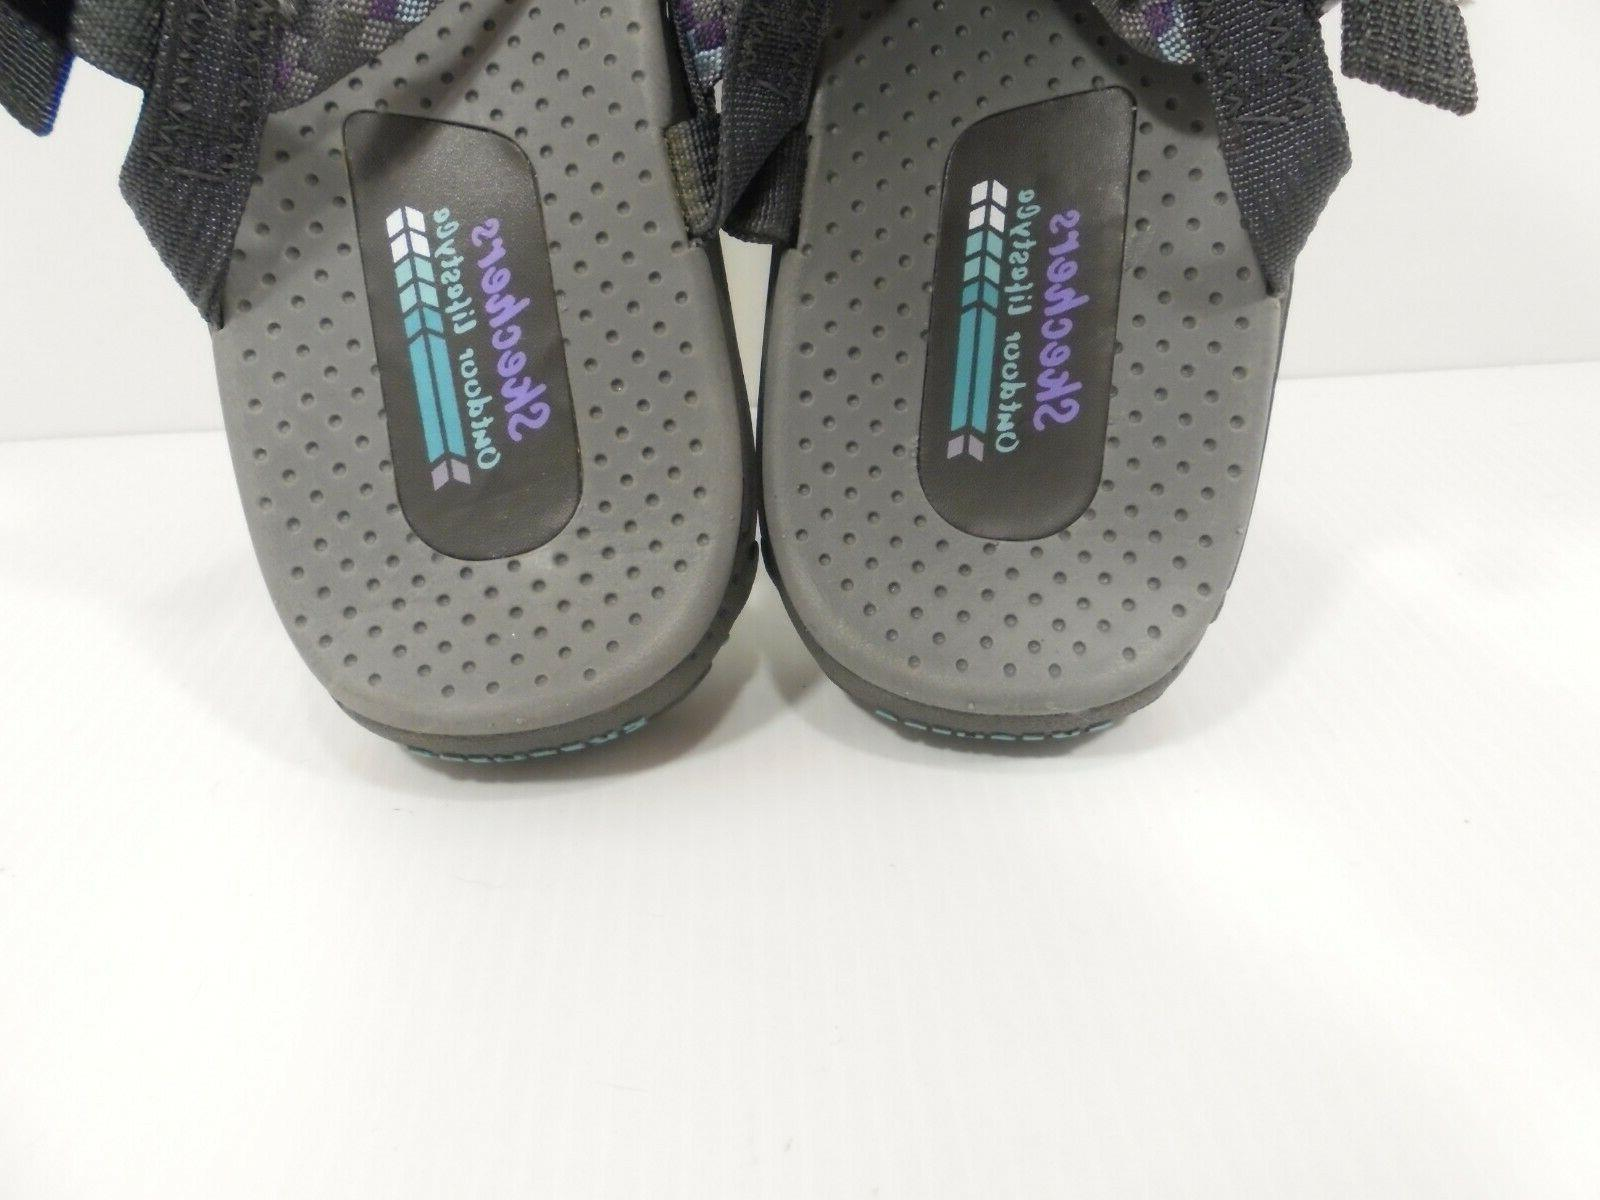 NEW! SKECHERS LIFESTYLE Sandals - Size US 10 M